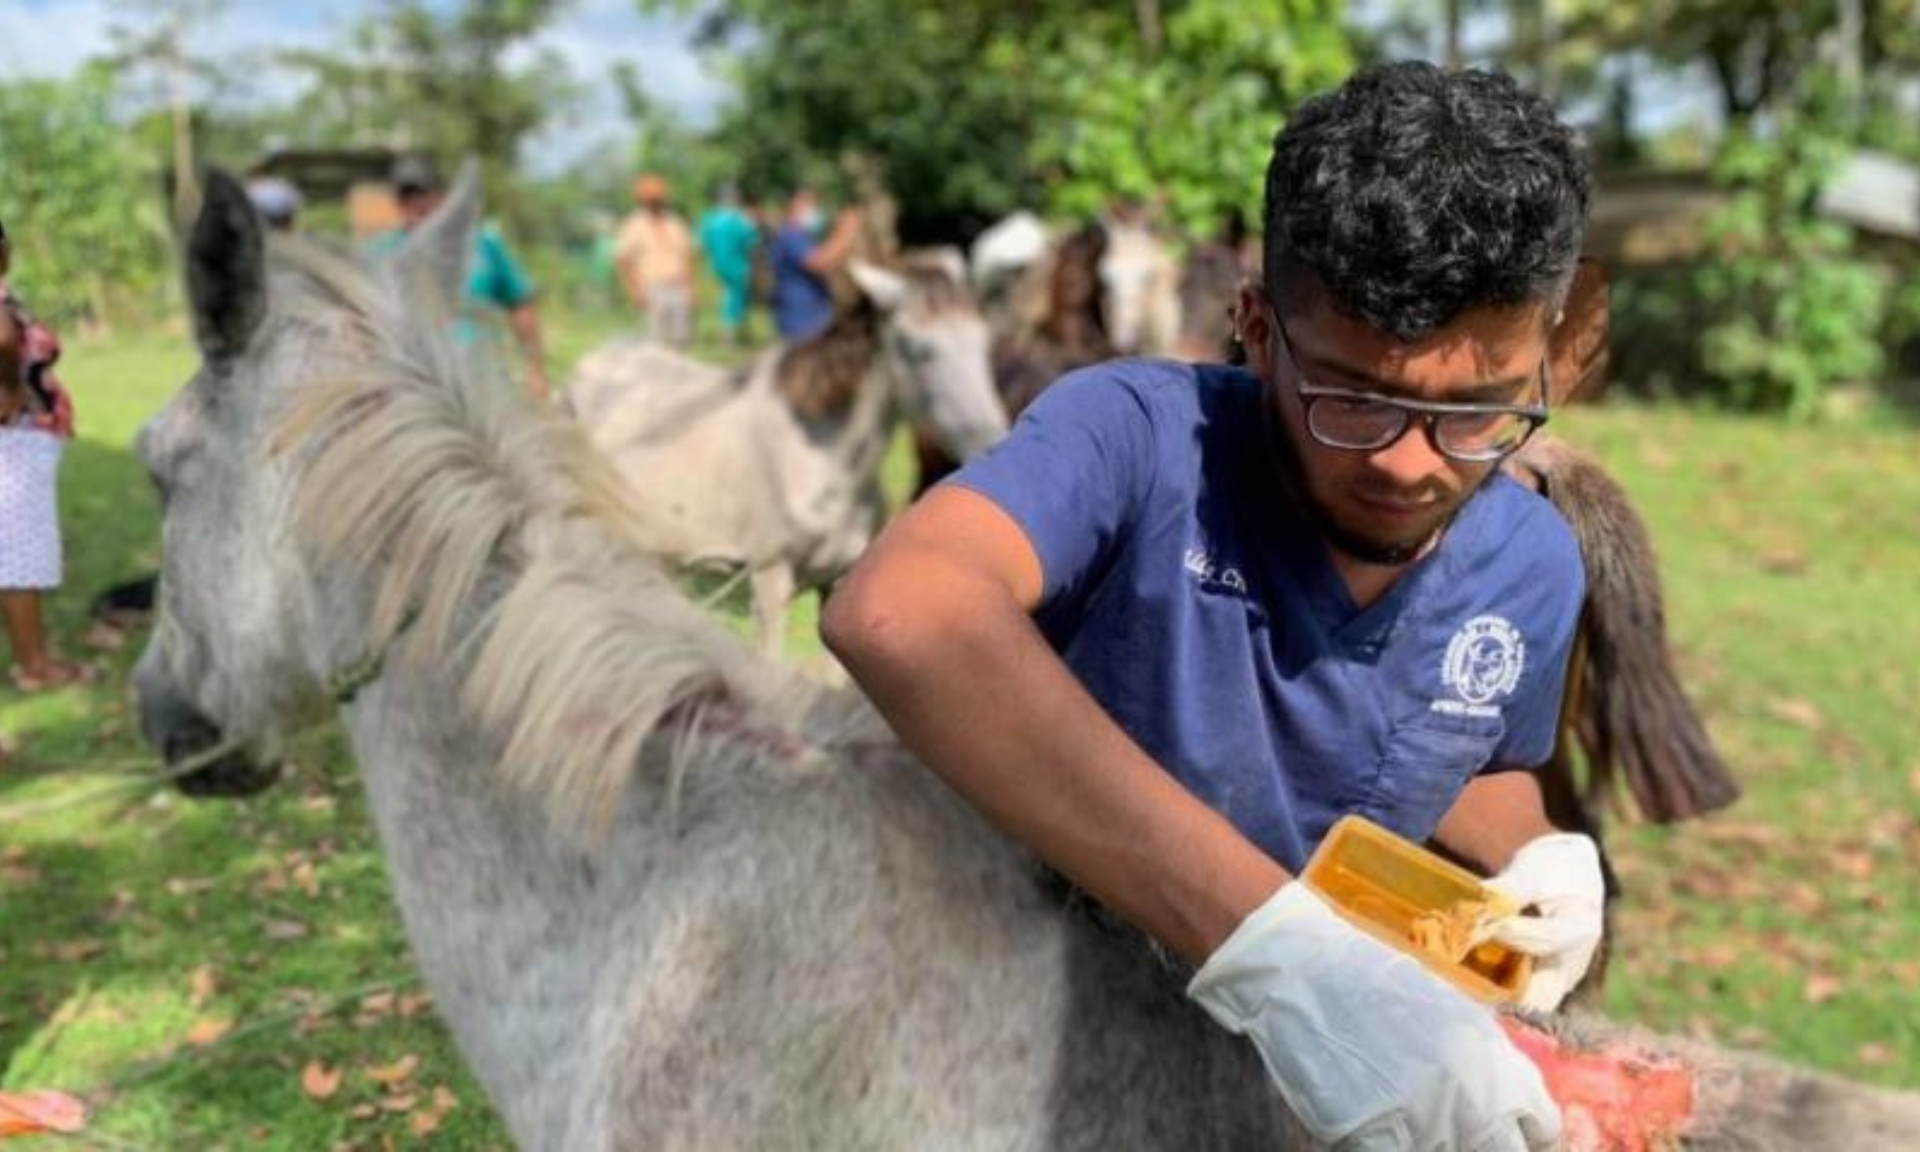 In Nicaragua, civil society groups include livestock, a critical rural asset, in disaster risk management plans to address the climate challenge.